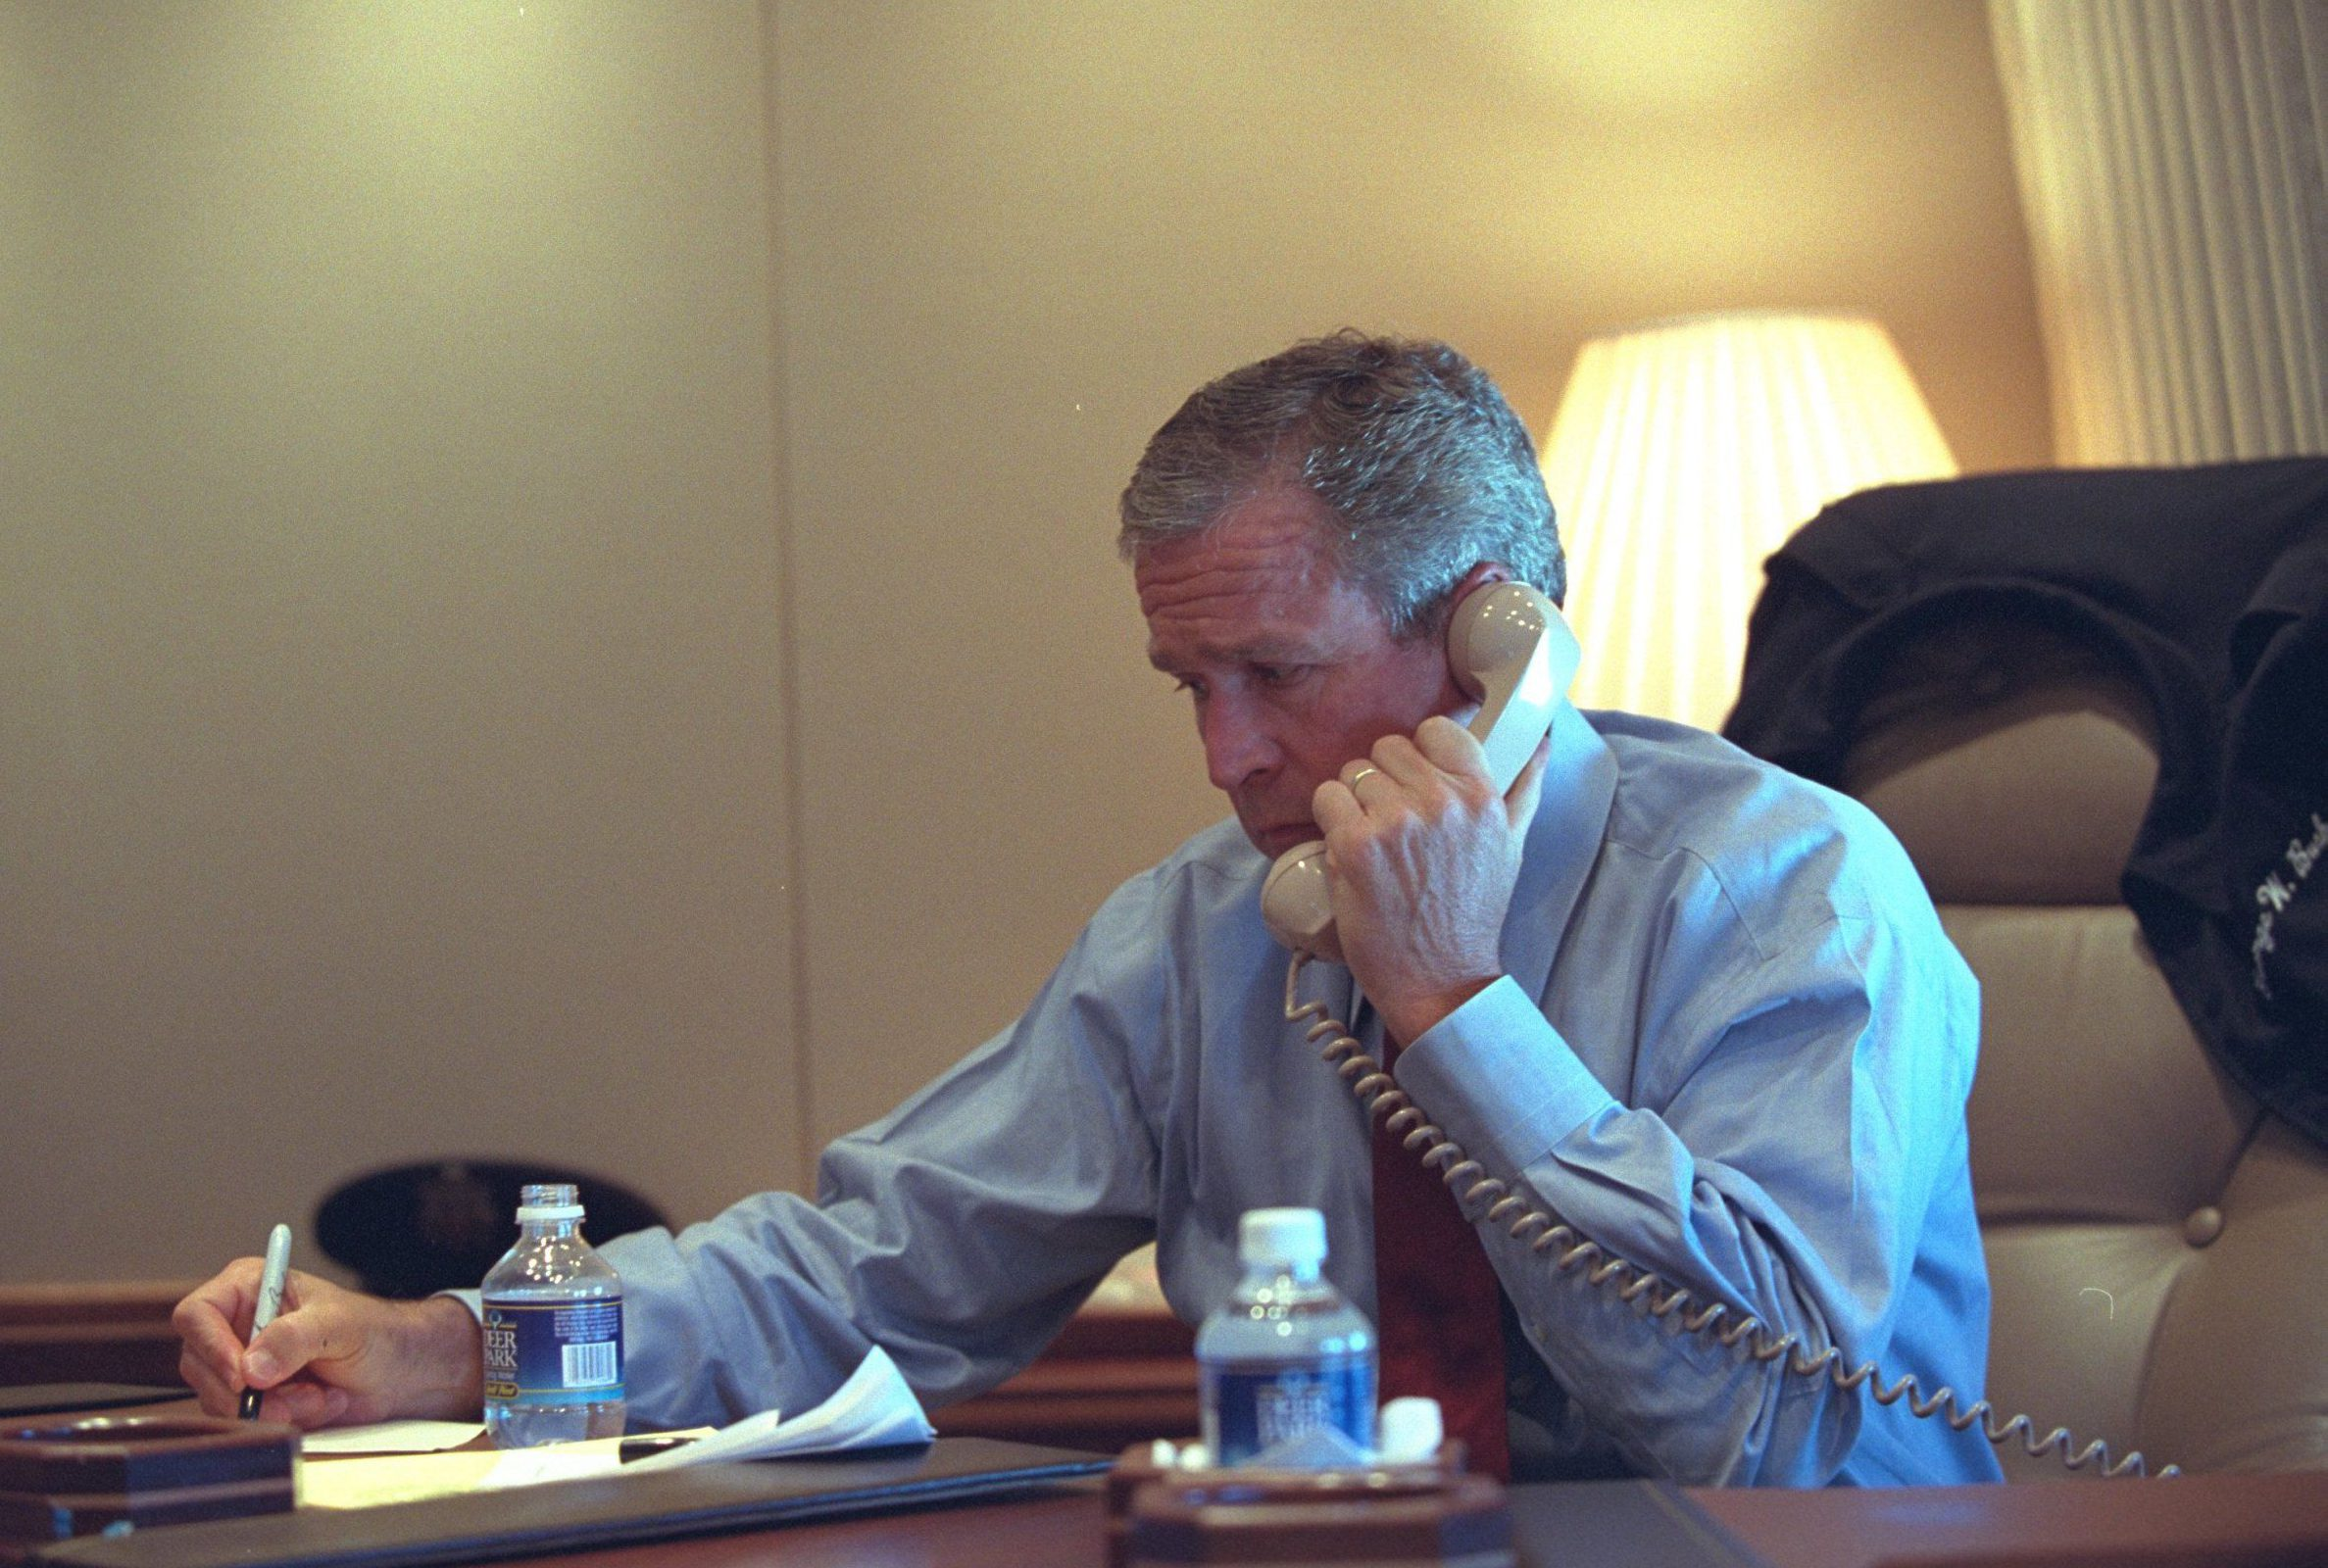 George Bush said 'we're going to get the b******s' after hearing about 9/11 attacks